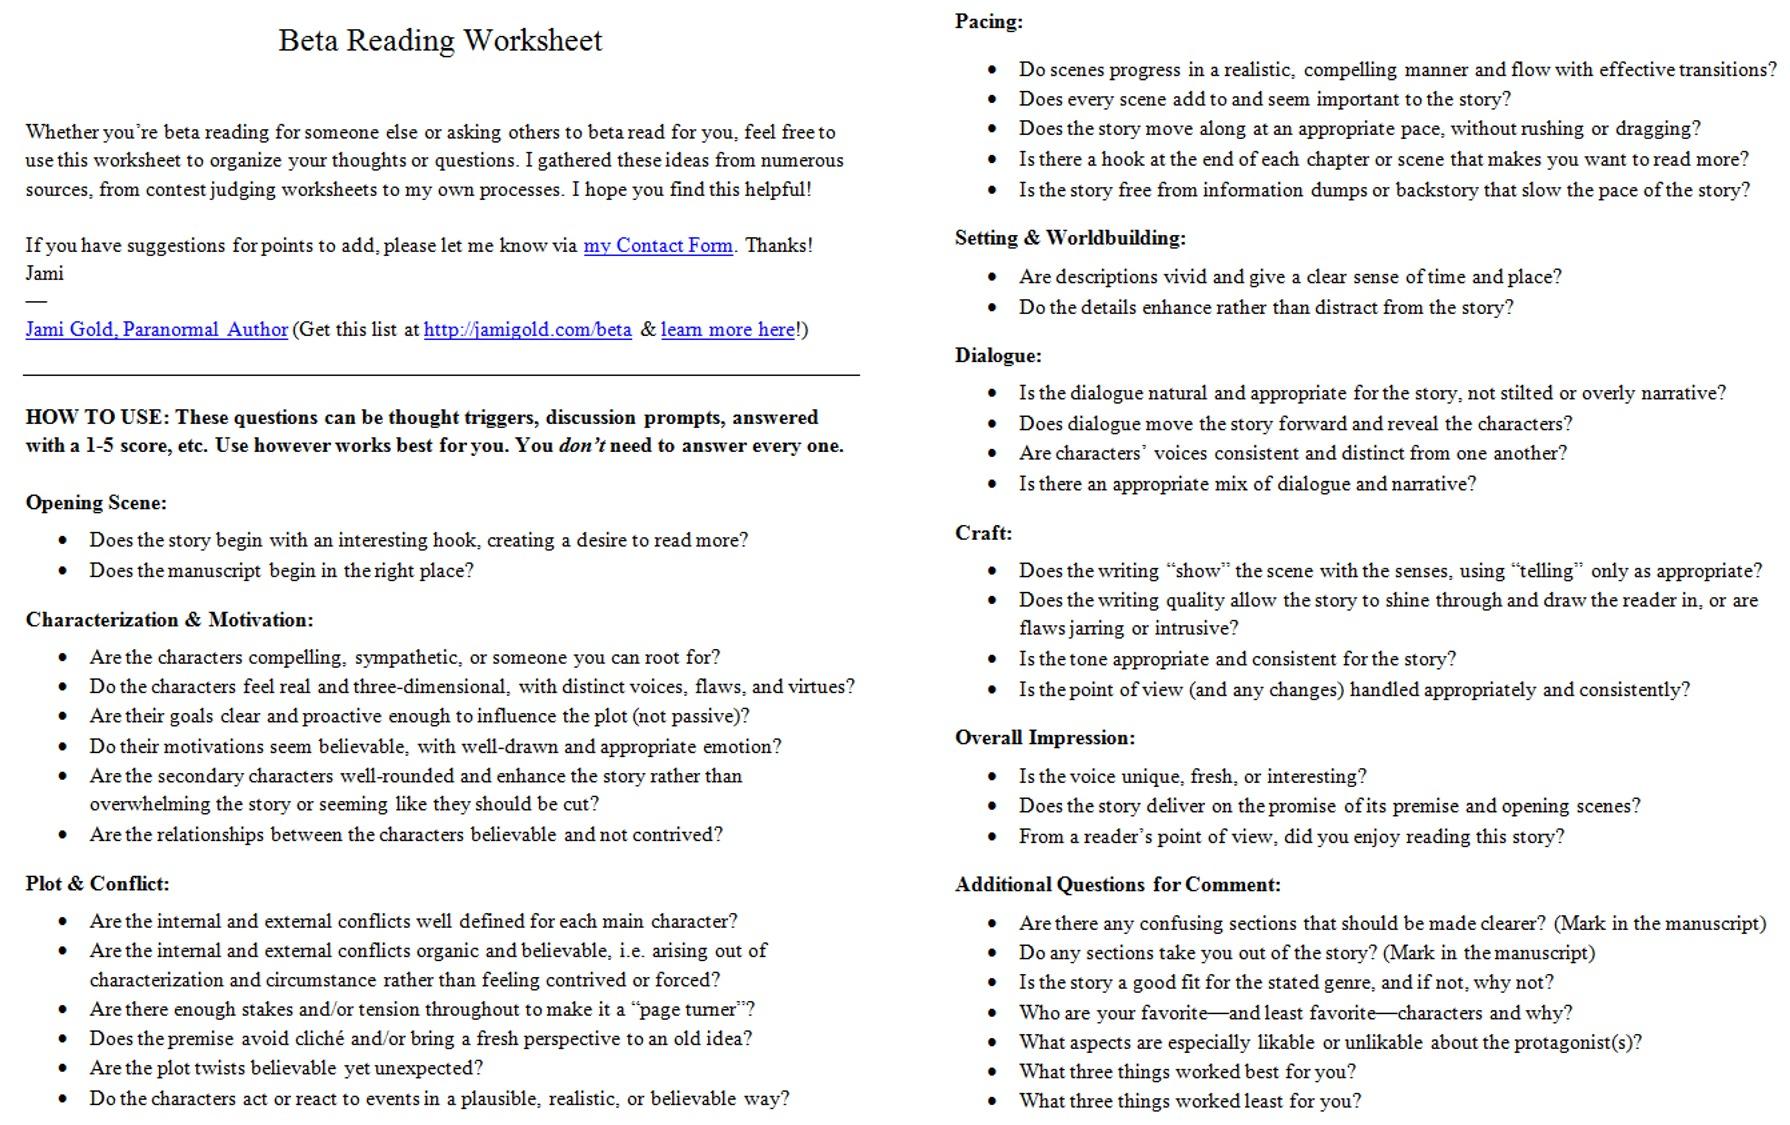 Aldiablosus  Winsome Worksheets For Writers  Jami Gold Paranormal Author With Magnificent Screen Shot Of The Twopage Beta Reading Worksheet With Breathtaking Grade  Math Worksheets Multiplication Also Problem Solving Worksheets Th Grade In Addition Worksheet Of And Free Printable Worksheets On Fractions As Well As Pre Writing Skills Worksheets Additionally Reflection Worksheets Year  From Jamigoldcom With Aldiablosus  Magnificent Worksheets For Writers  Jami Gold Paranormal Author With Breathtaking Screen Shot Of The Twopage Beta Reading Worksheet And Winsome Grade  Math Worksheets Multiplication Also Problem Solving Worksheets Th Grade In Addition Worksheet Of From Jamigoldcom